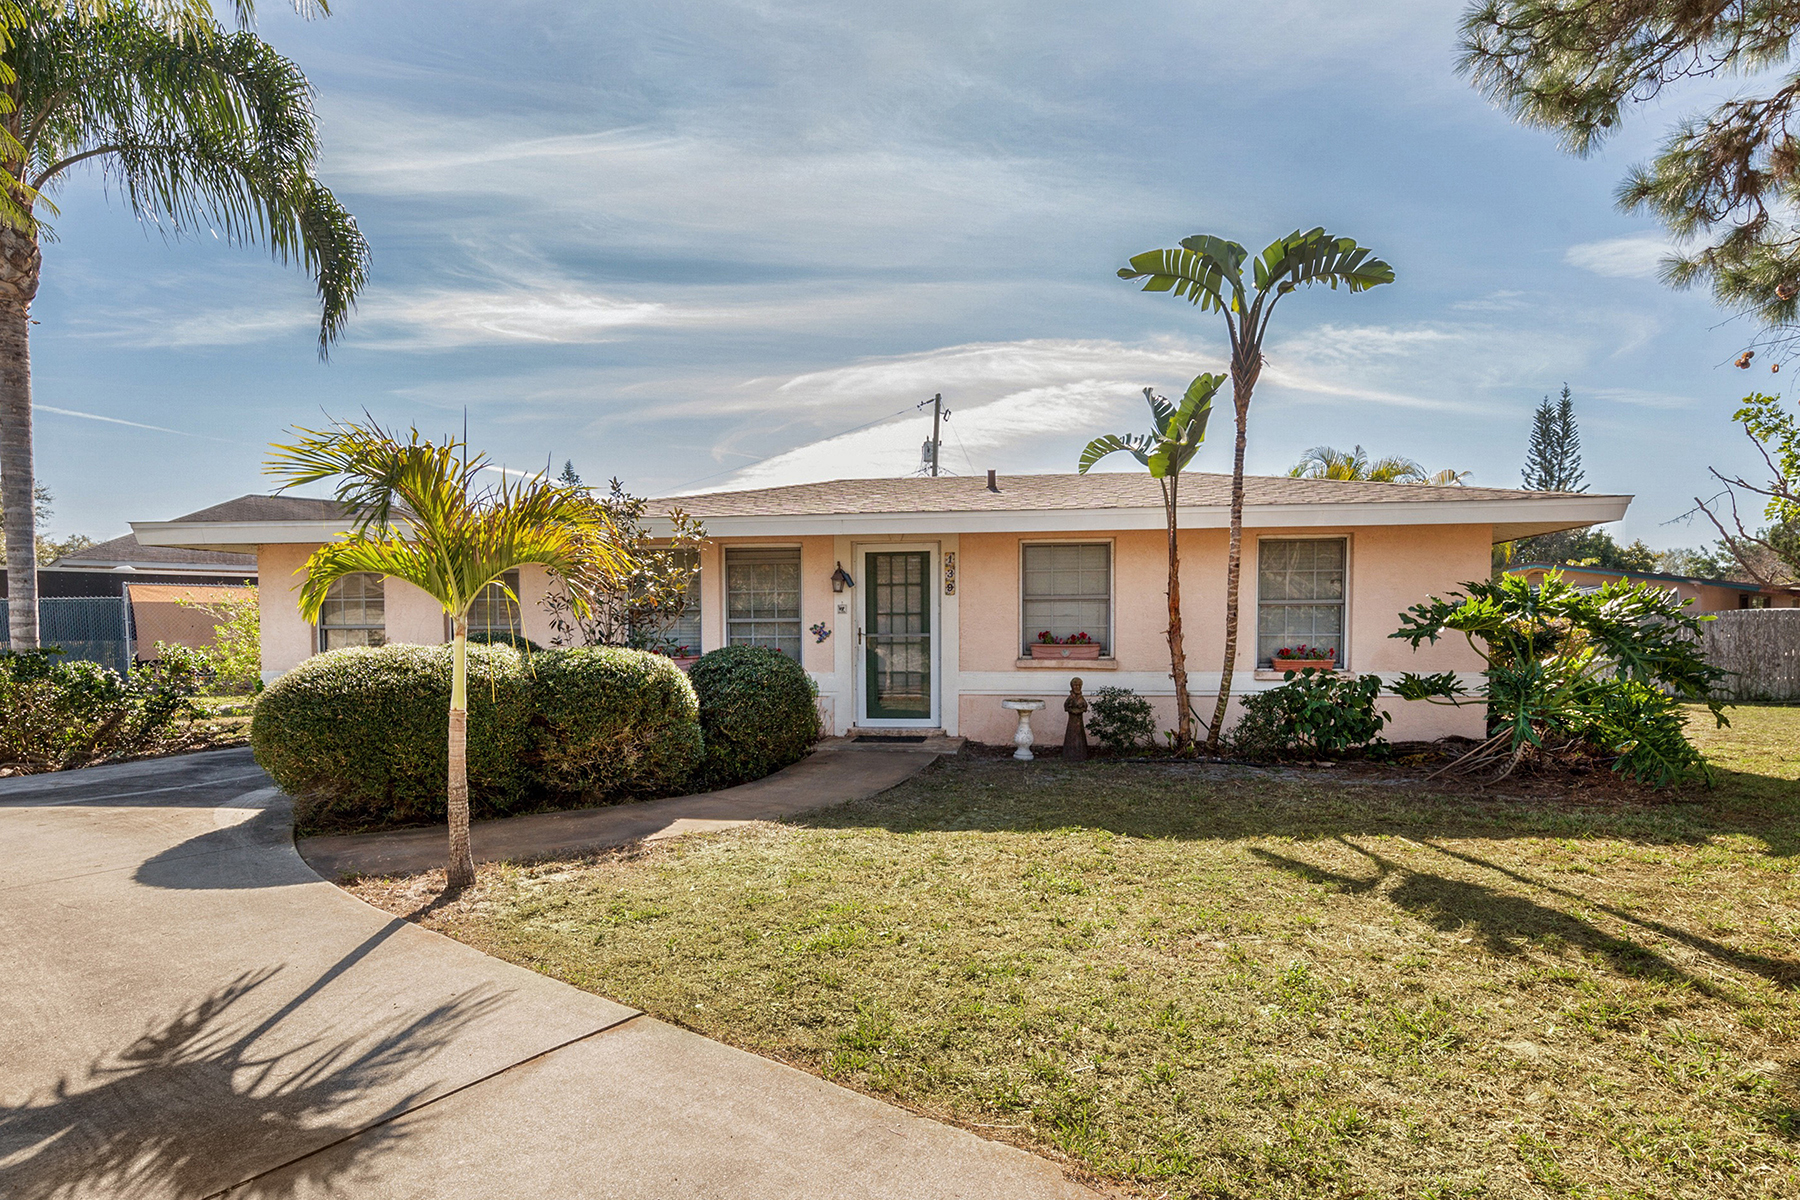 Single Family Home for Sale at SOUTH VENICE 139 Princeton Rd Rd Venice, Florida, 34293 United States